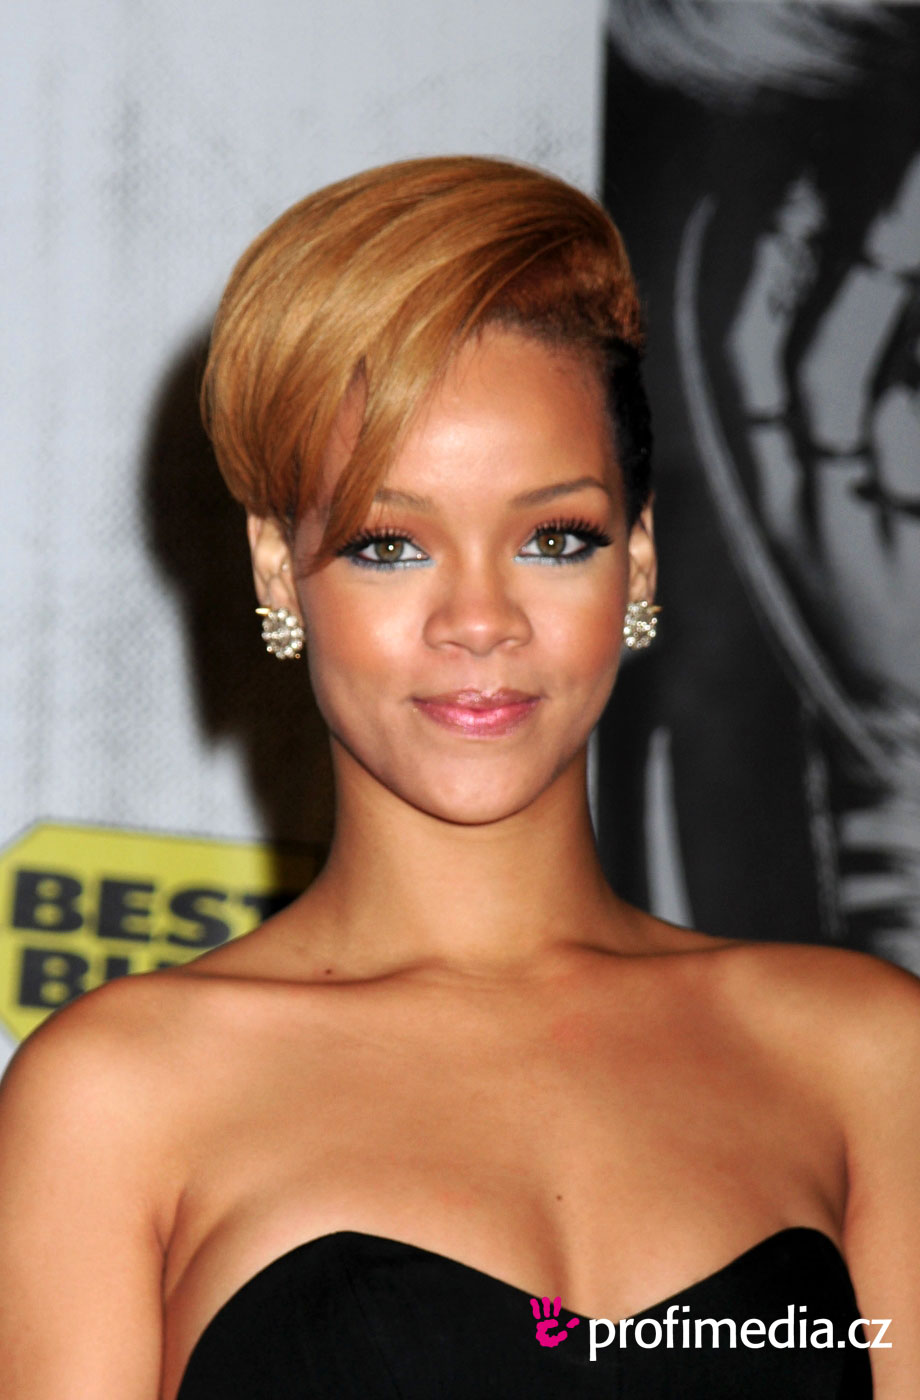 Rihanna Hairstyles Image Gallery, Long Hairstyle 2011, Hairstyle 2011, New Long Hairstyle 2011, Celebrity Long Hairstyles 2071